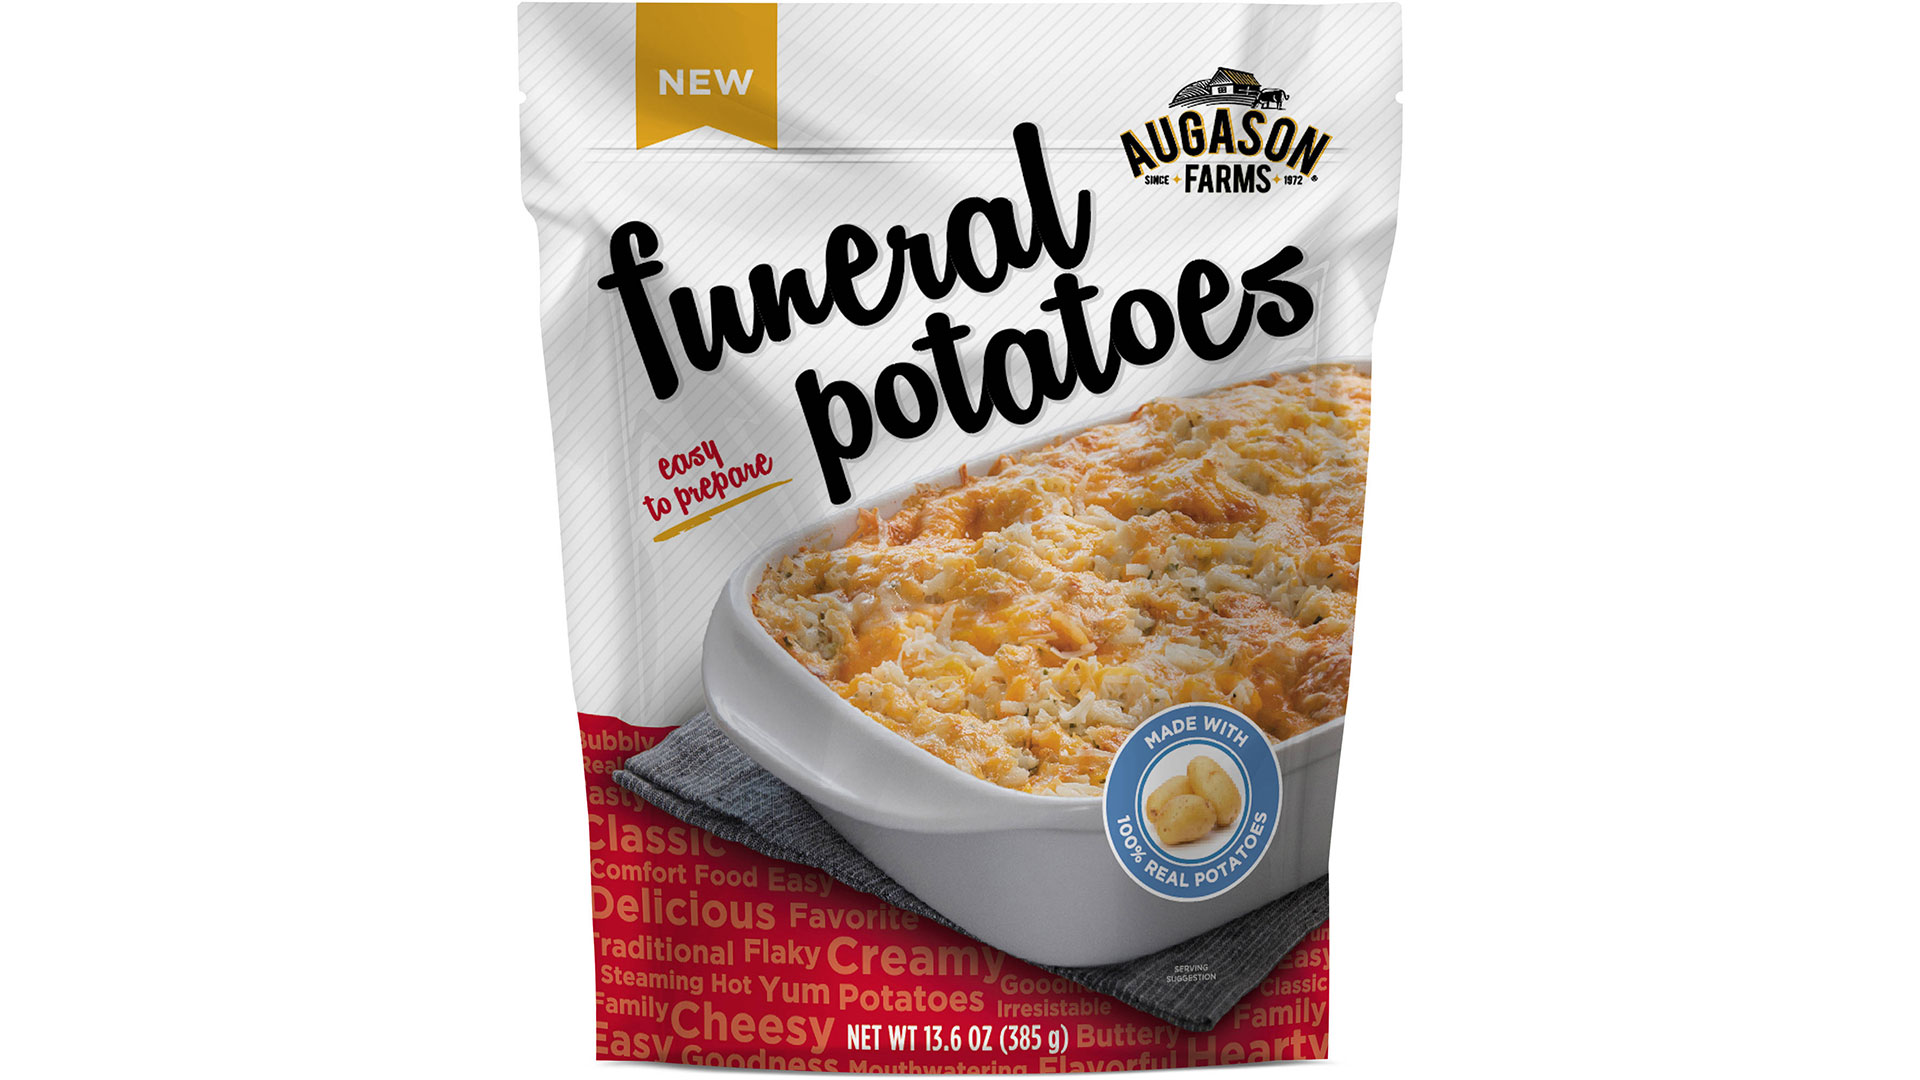 Walmart Has Started Selling Funeral Potatoes and the Internet is Losing It